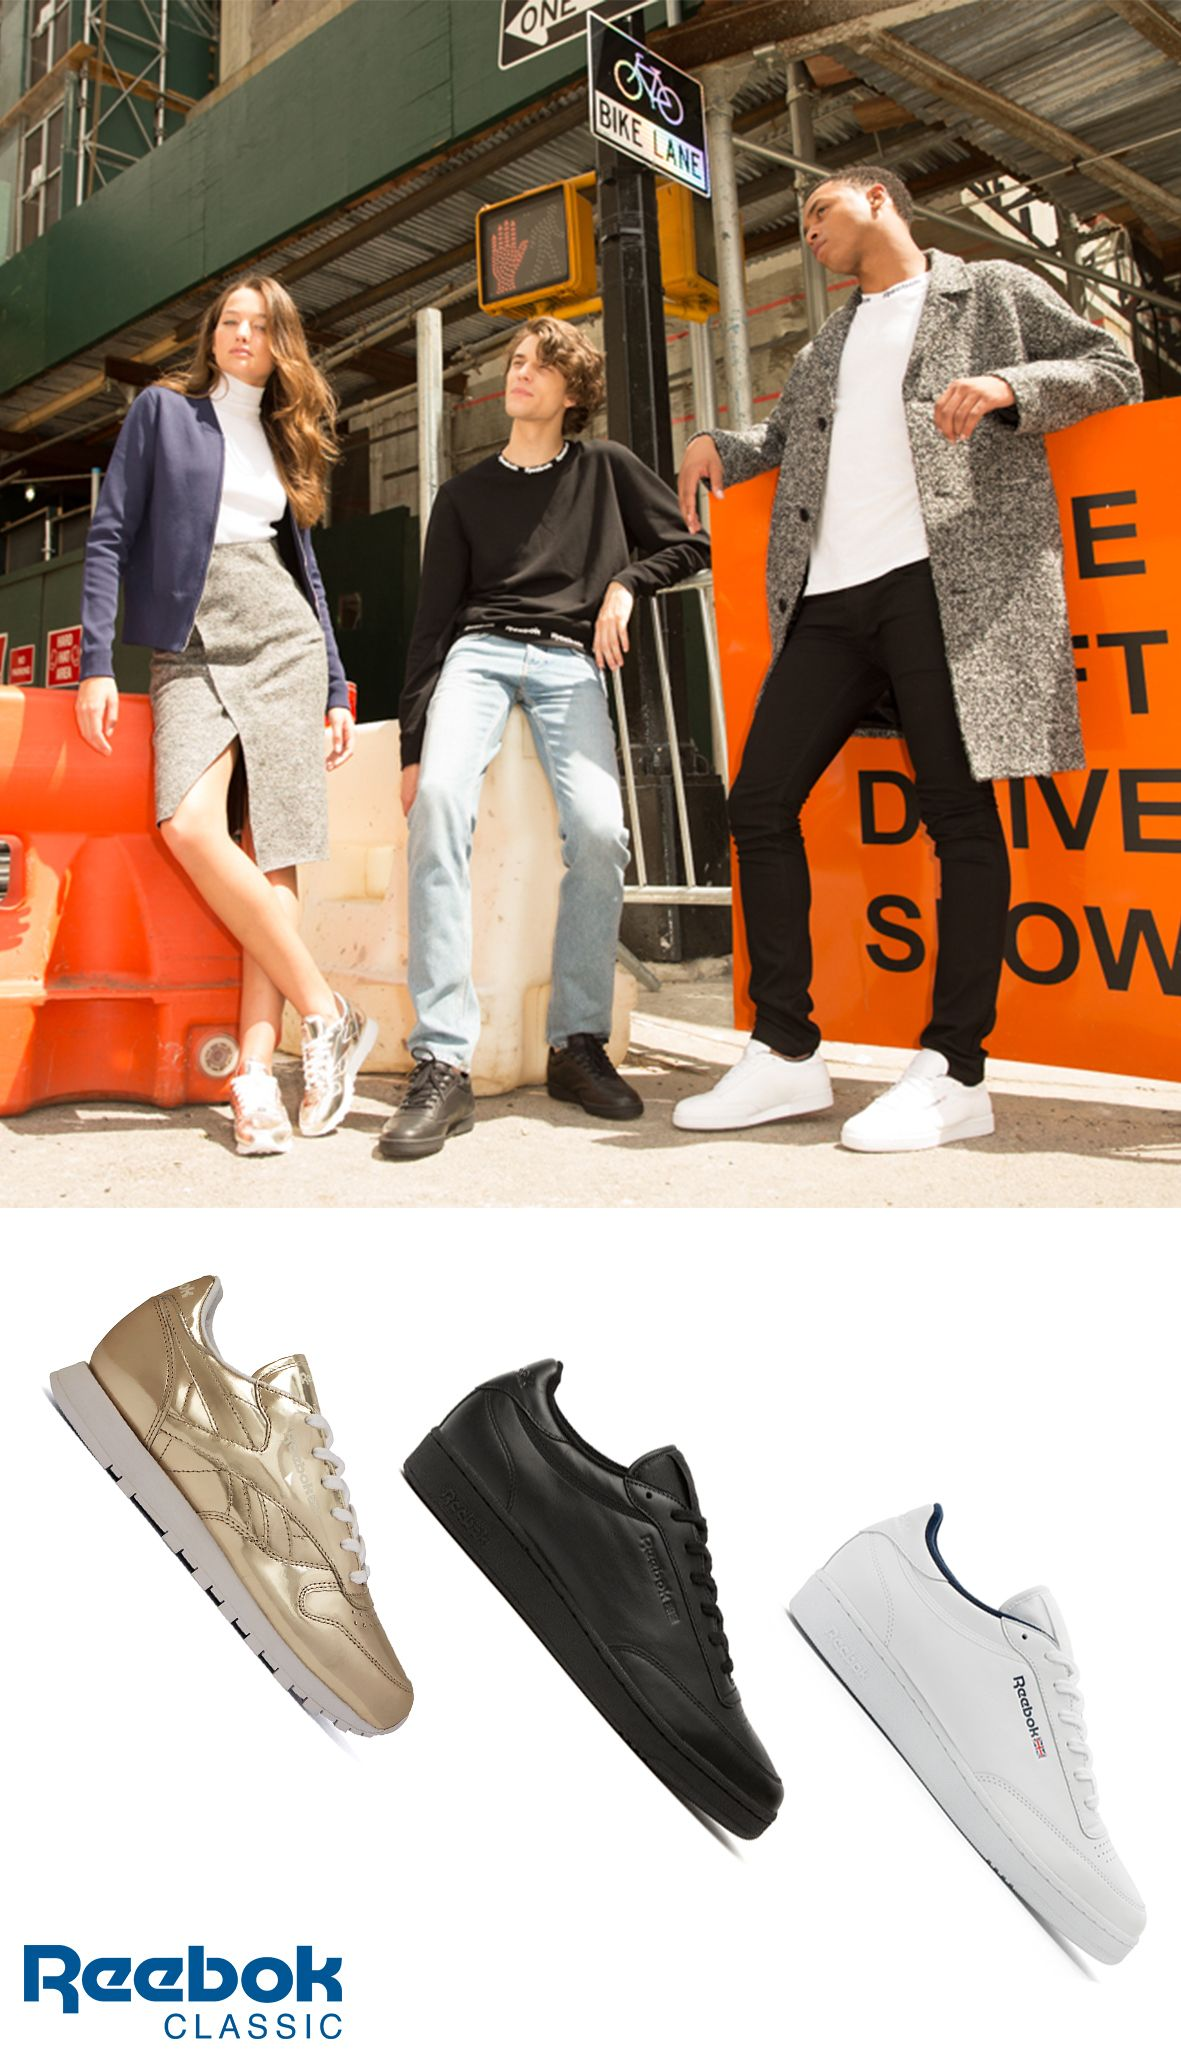 c1073c4a576c Simple yet sophisticated city fashion. The Reebok Classic X Sandro  collection features gold Classic Leather shoes for women and the Club C  men s sneaker in ...